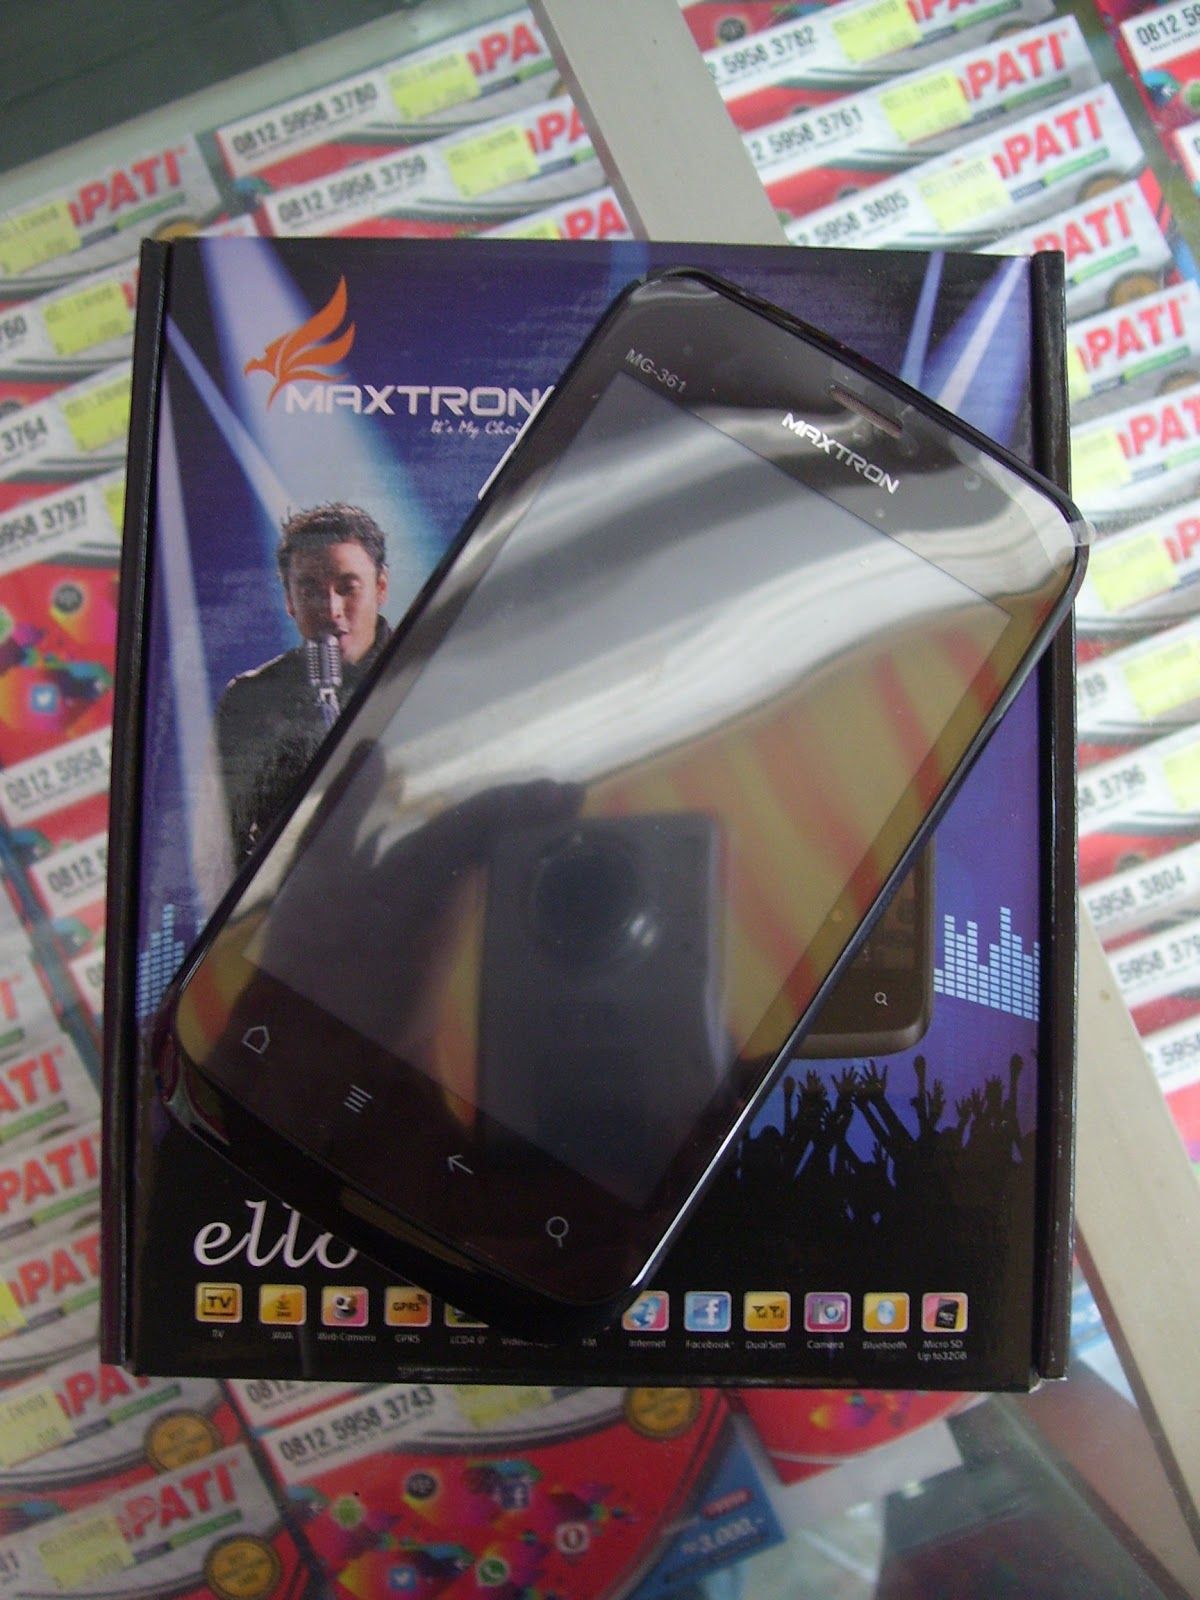 download game hp maxtron mg 267